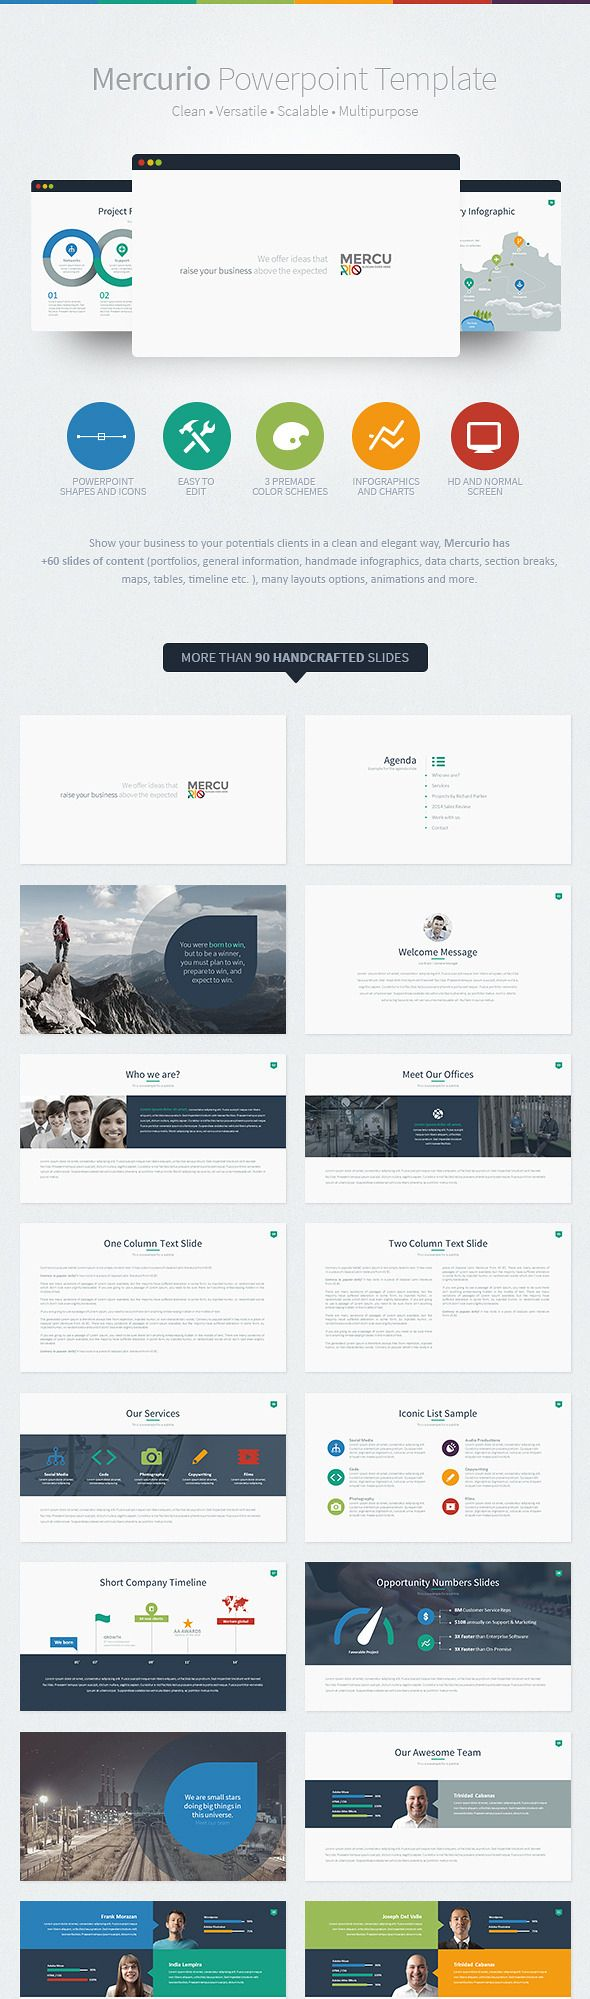 Mercurio is a clean, versatile, scalable and multipurpose PowerPoint Template to present your business to potentials clients in a elegant way, Mercurio has +90 slides of content (portfolios, general information, handmade infographics, data charts, section breaks, maps, tables, timeline etc. ), many layouts options, animations and more